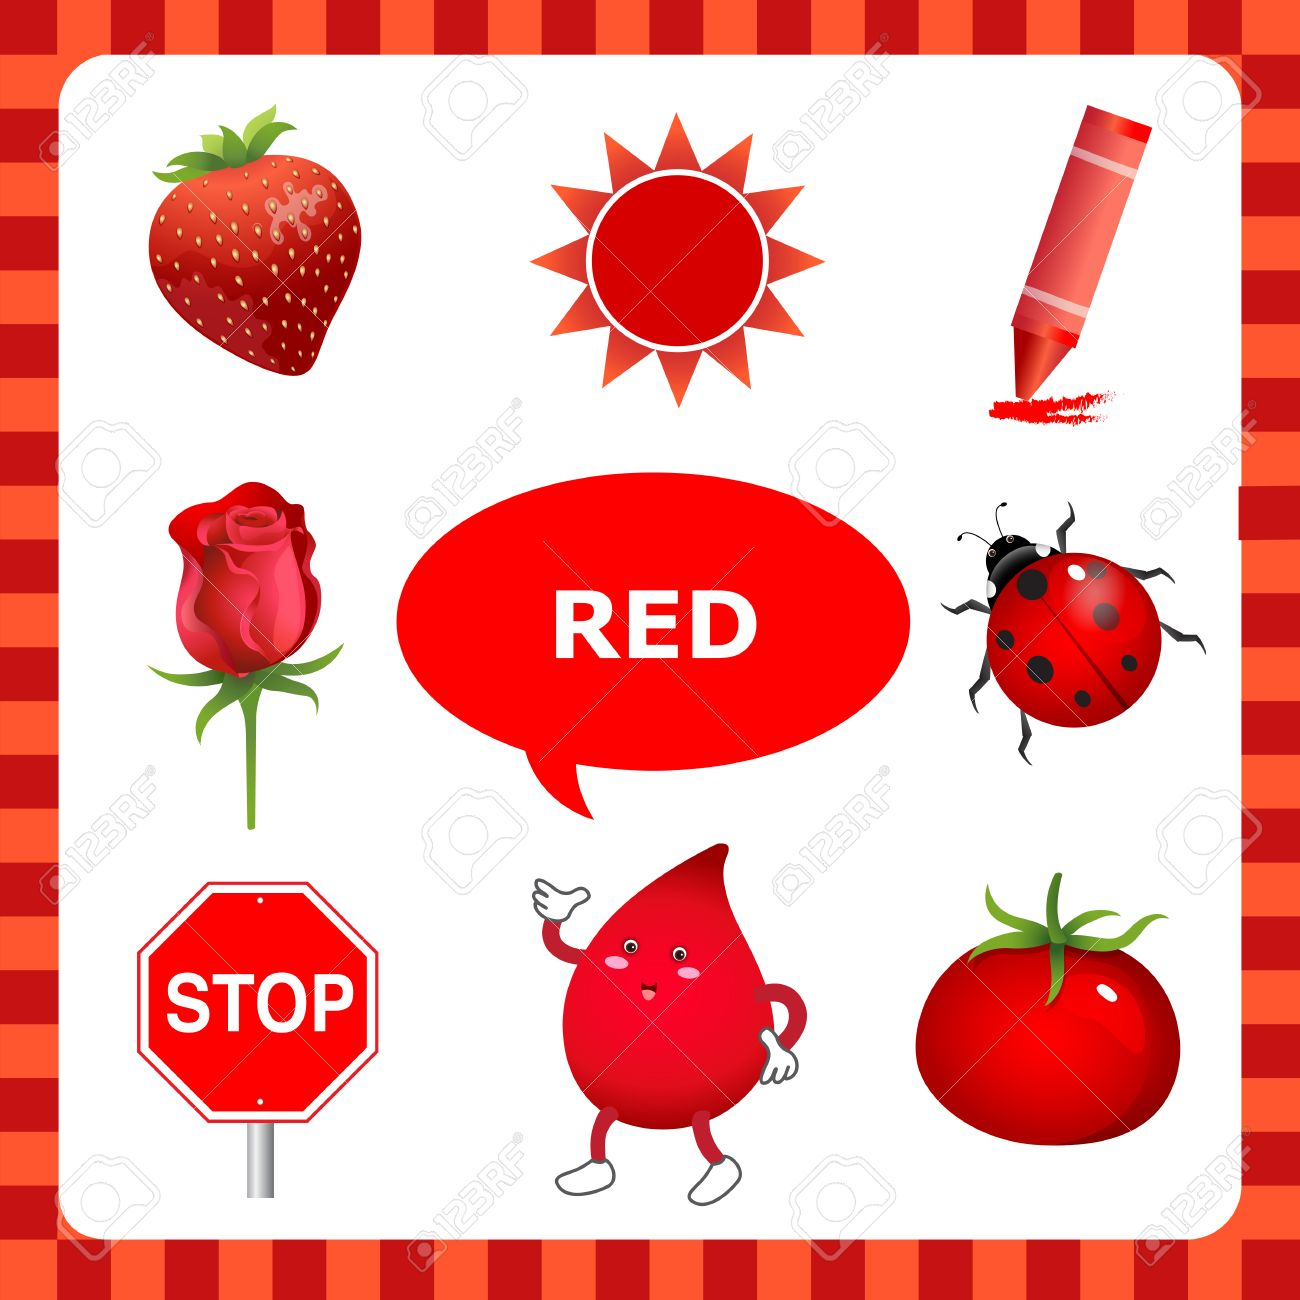 Red Color Objects Clipart.